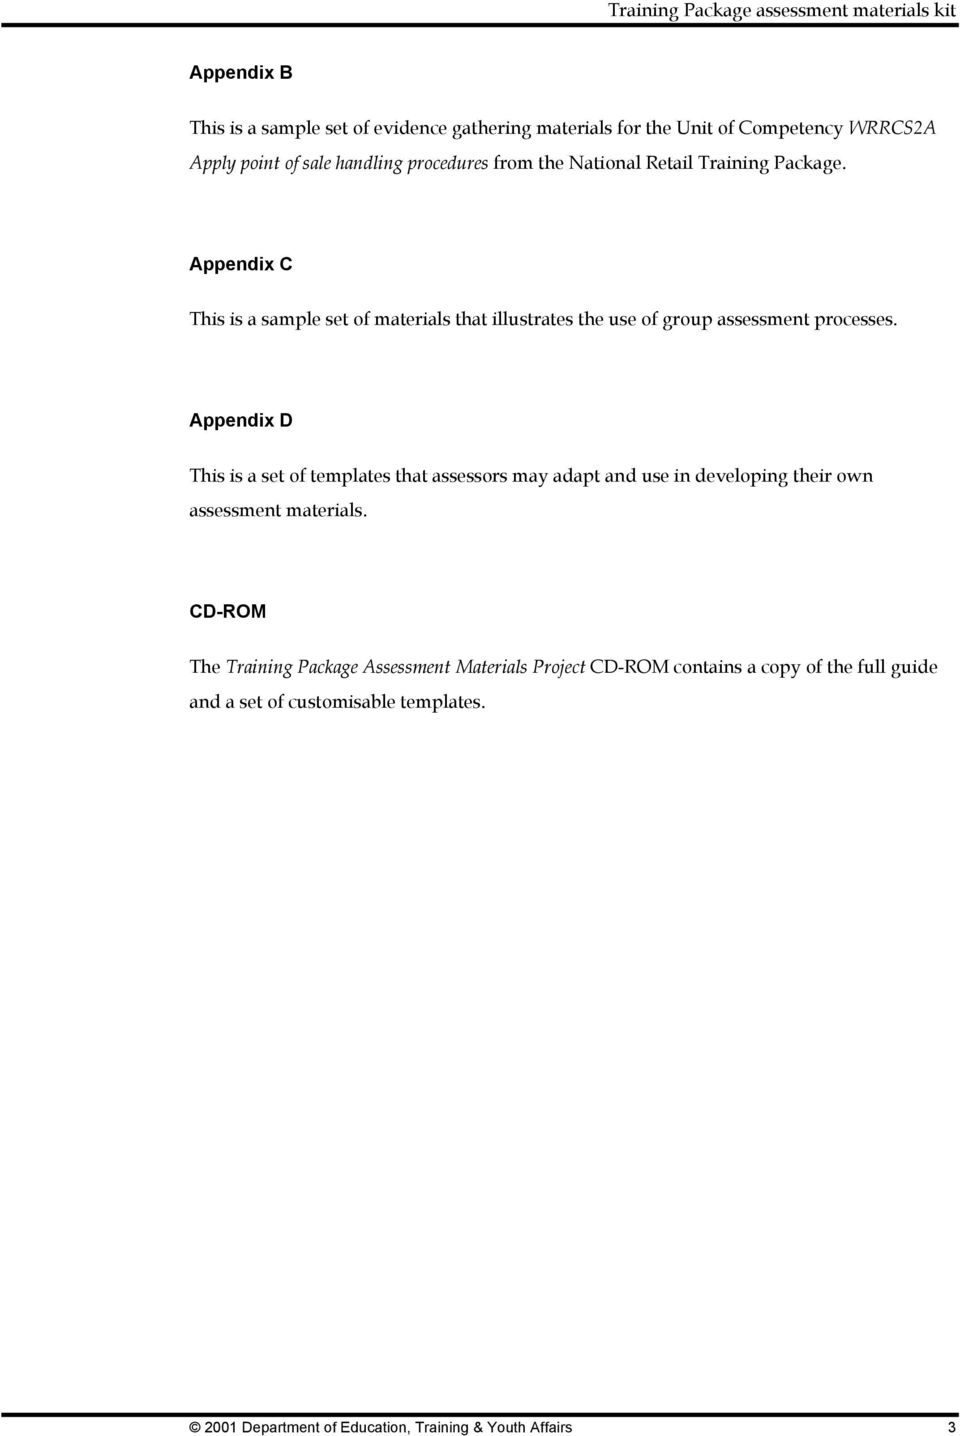 Training Package Assessment Materials Kit Pdf